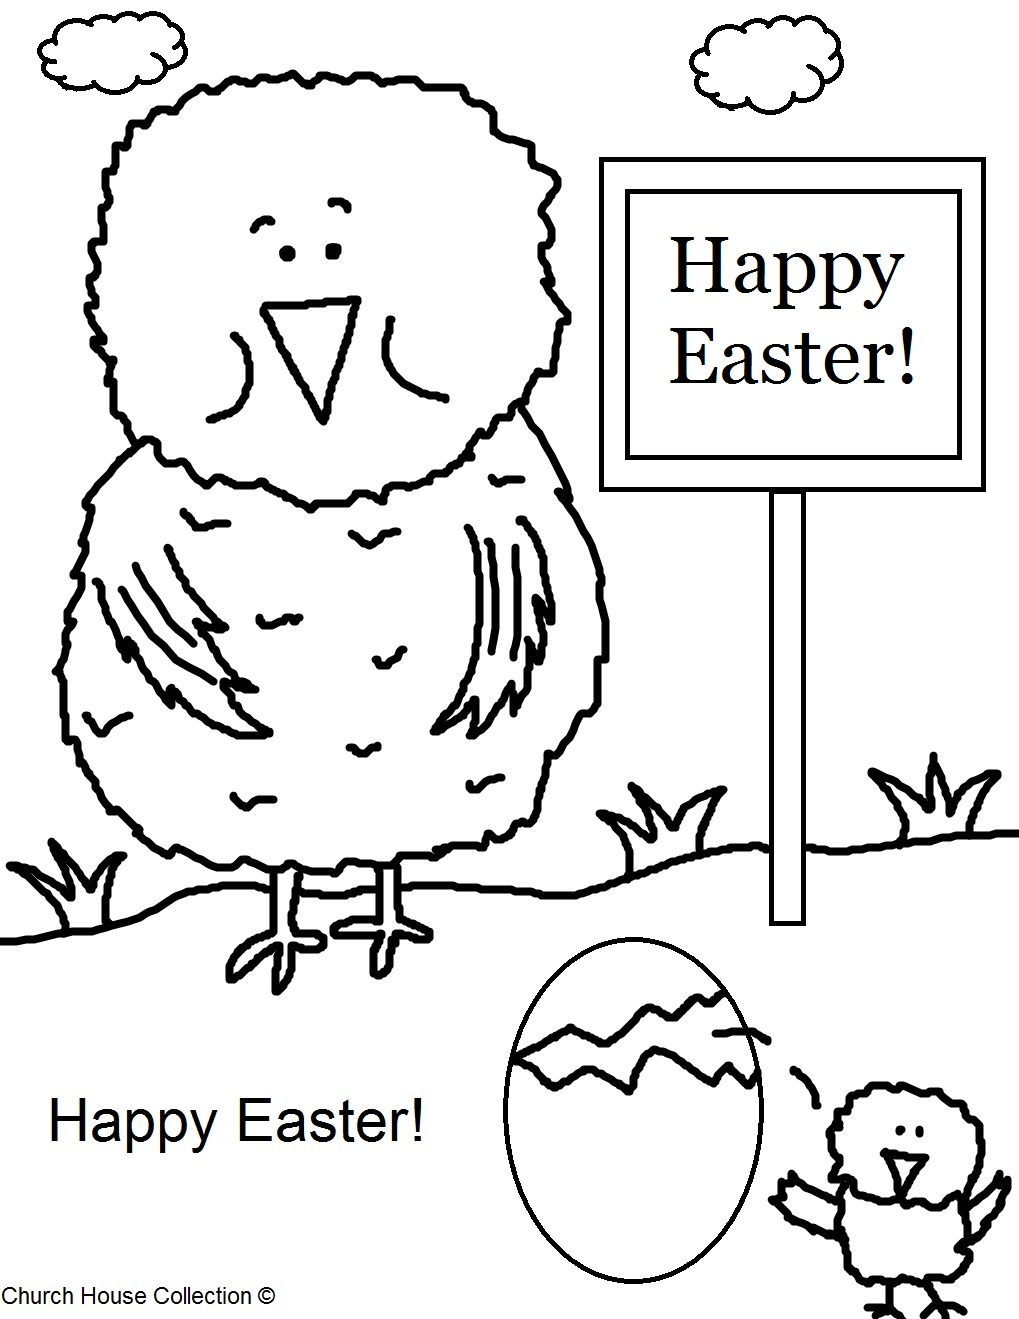 Church House Collection Blog: Cave City School Easter